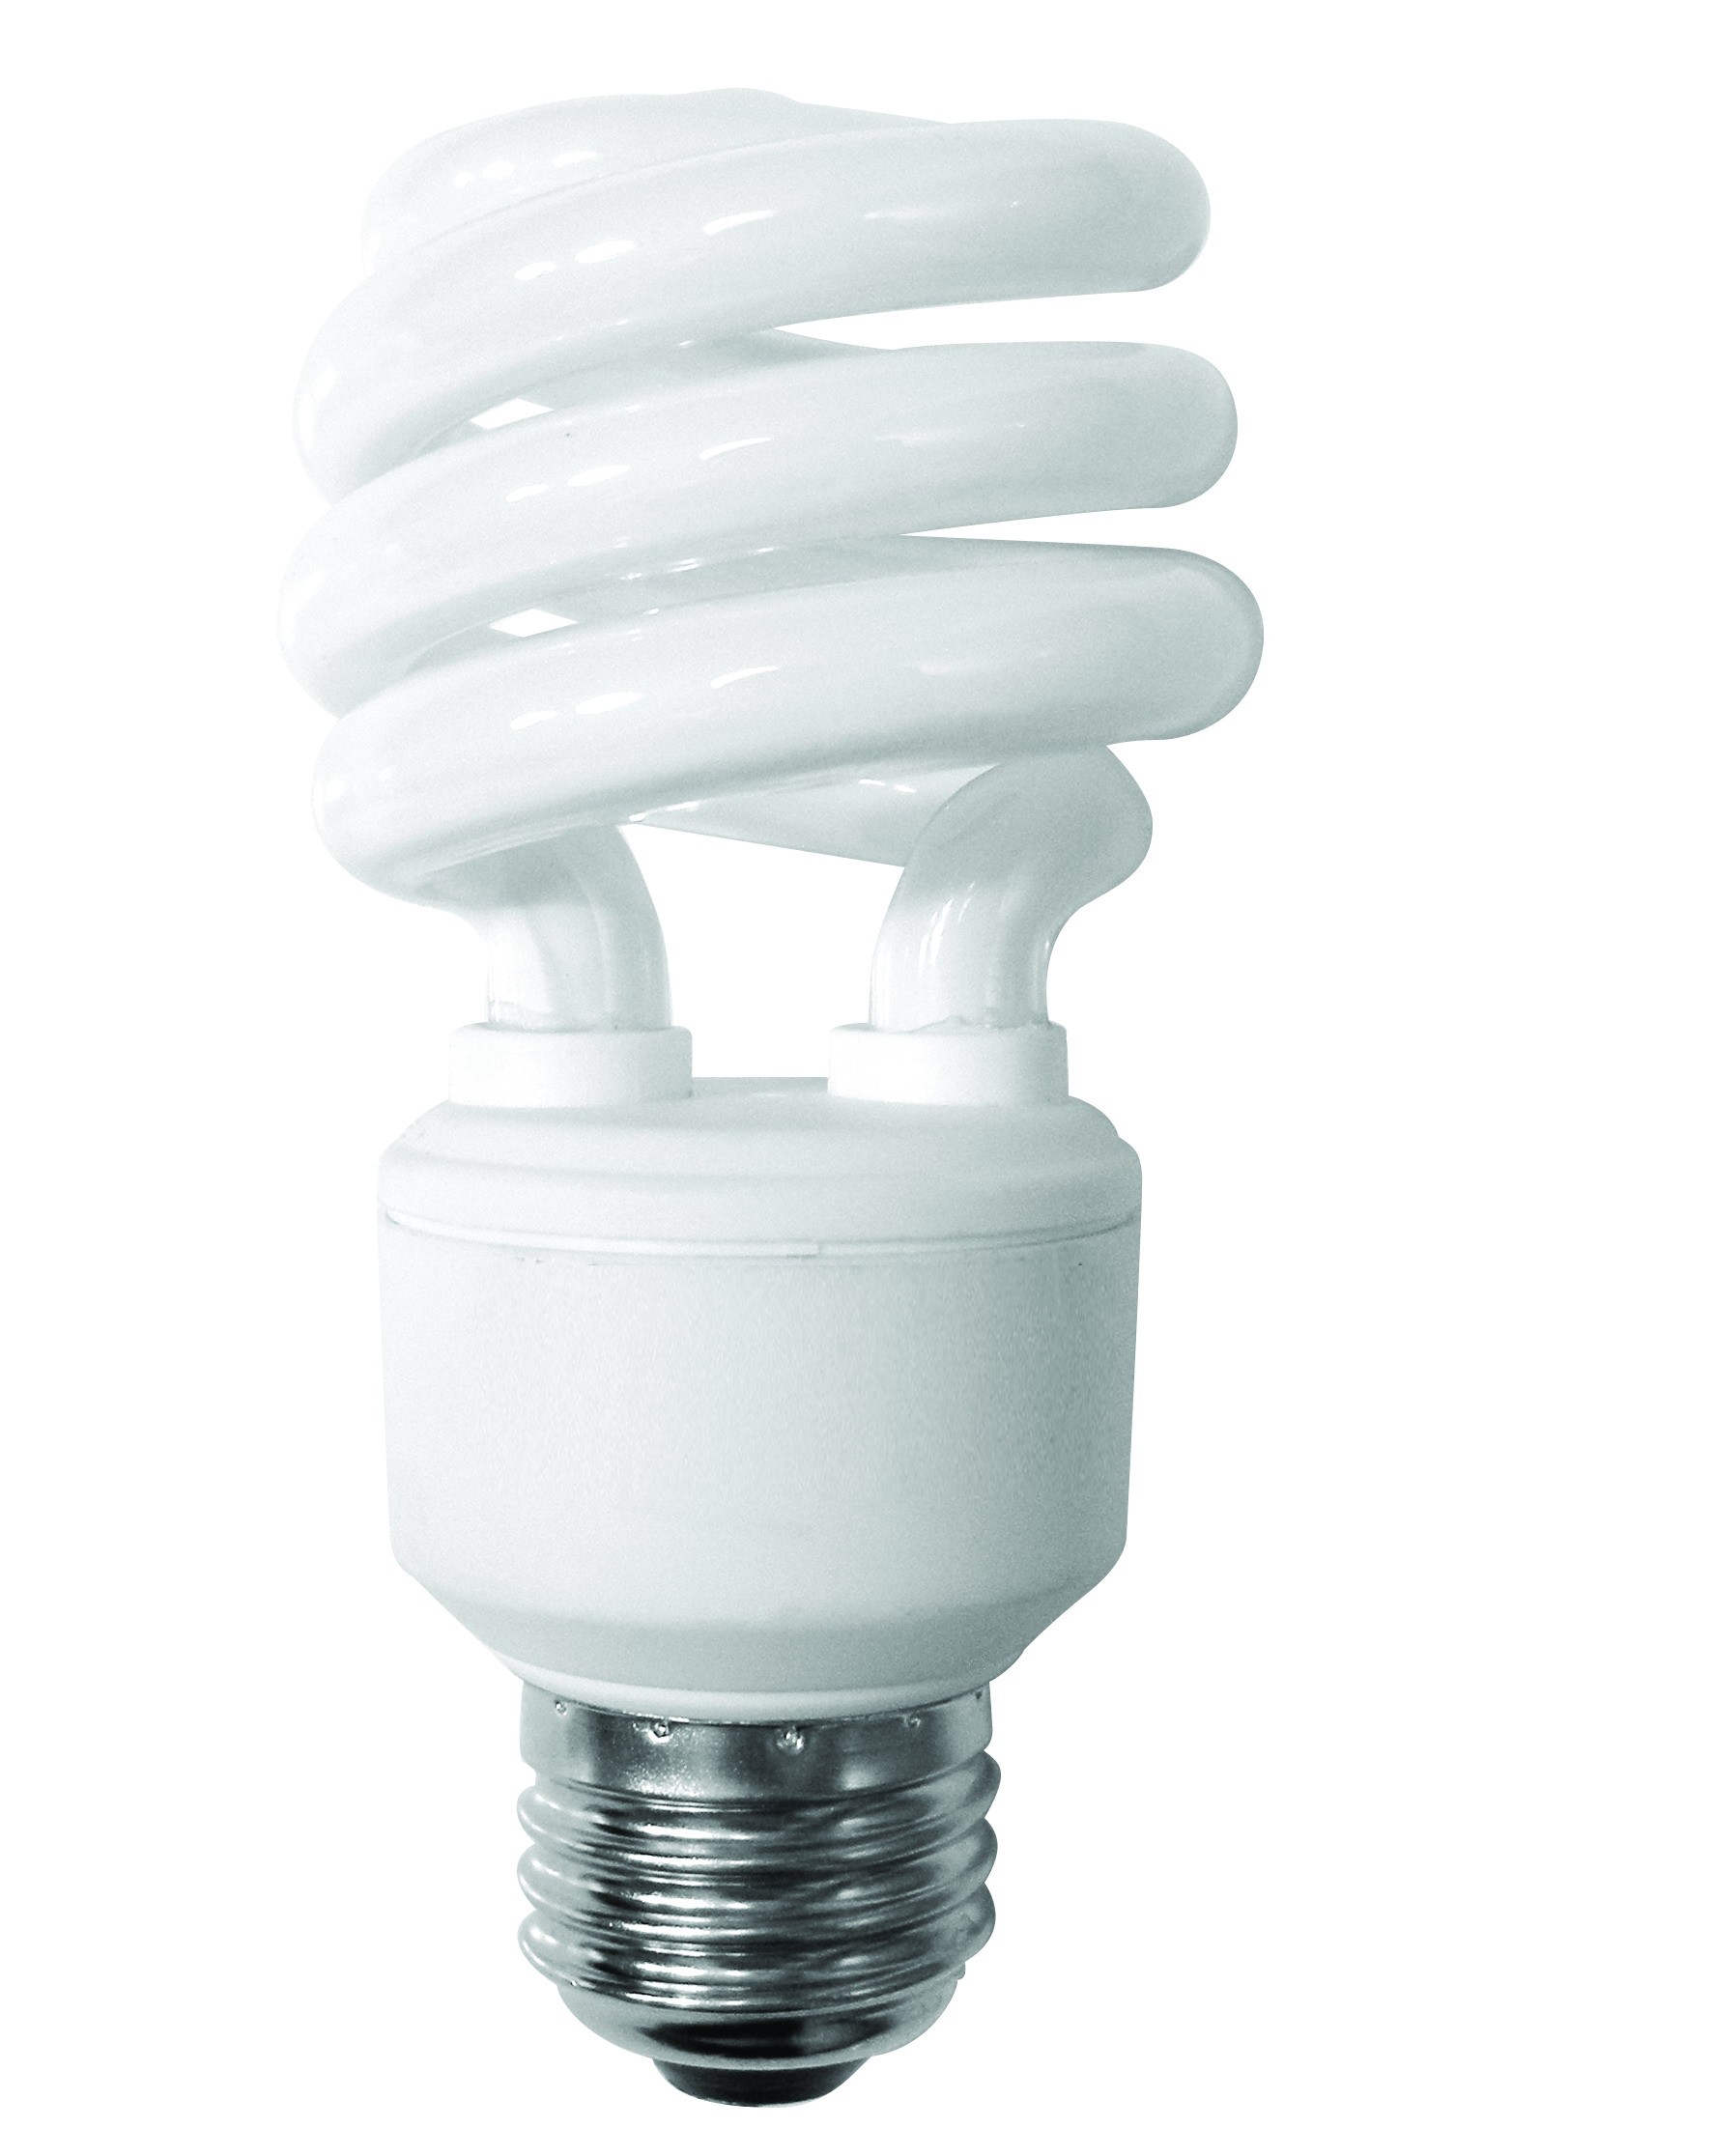 Cfl Bulbs Cfl Lamp Led Or Cfl Led Cfl Lighting And Accessories